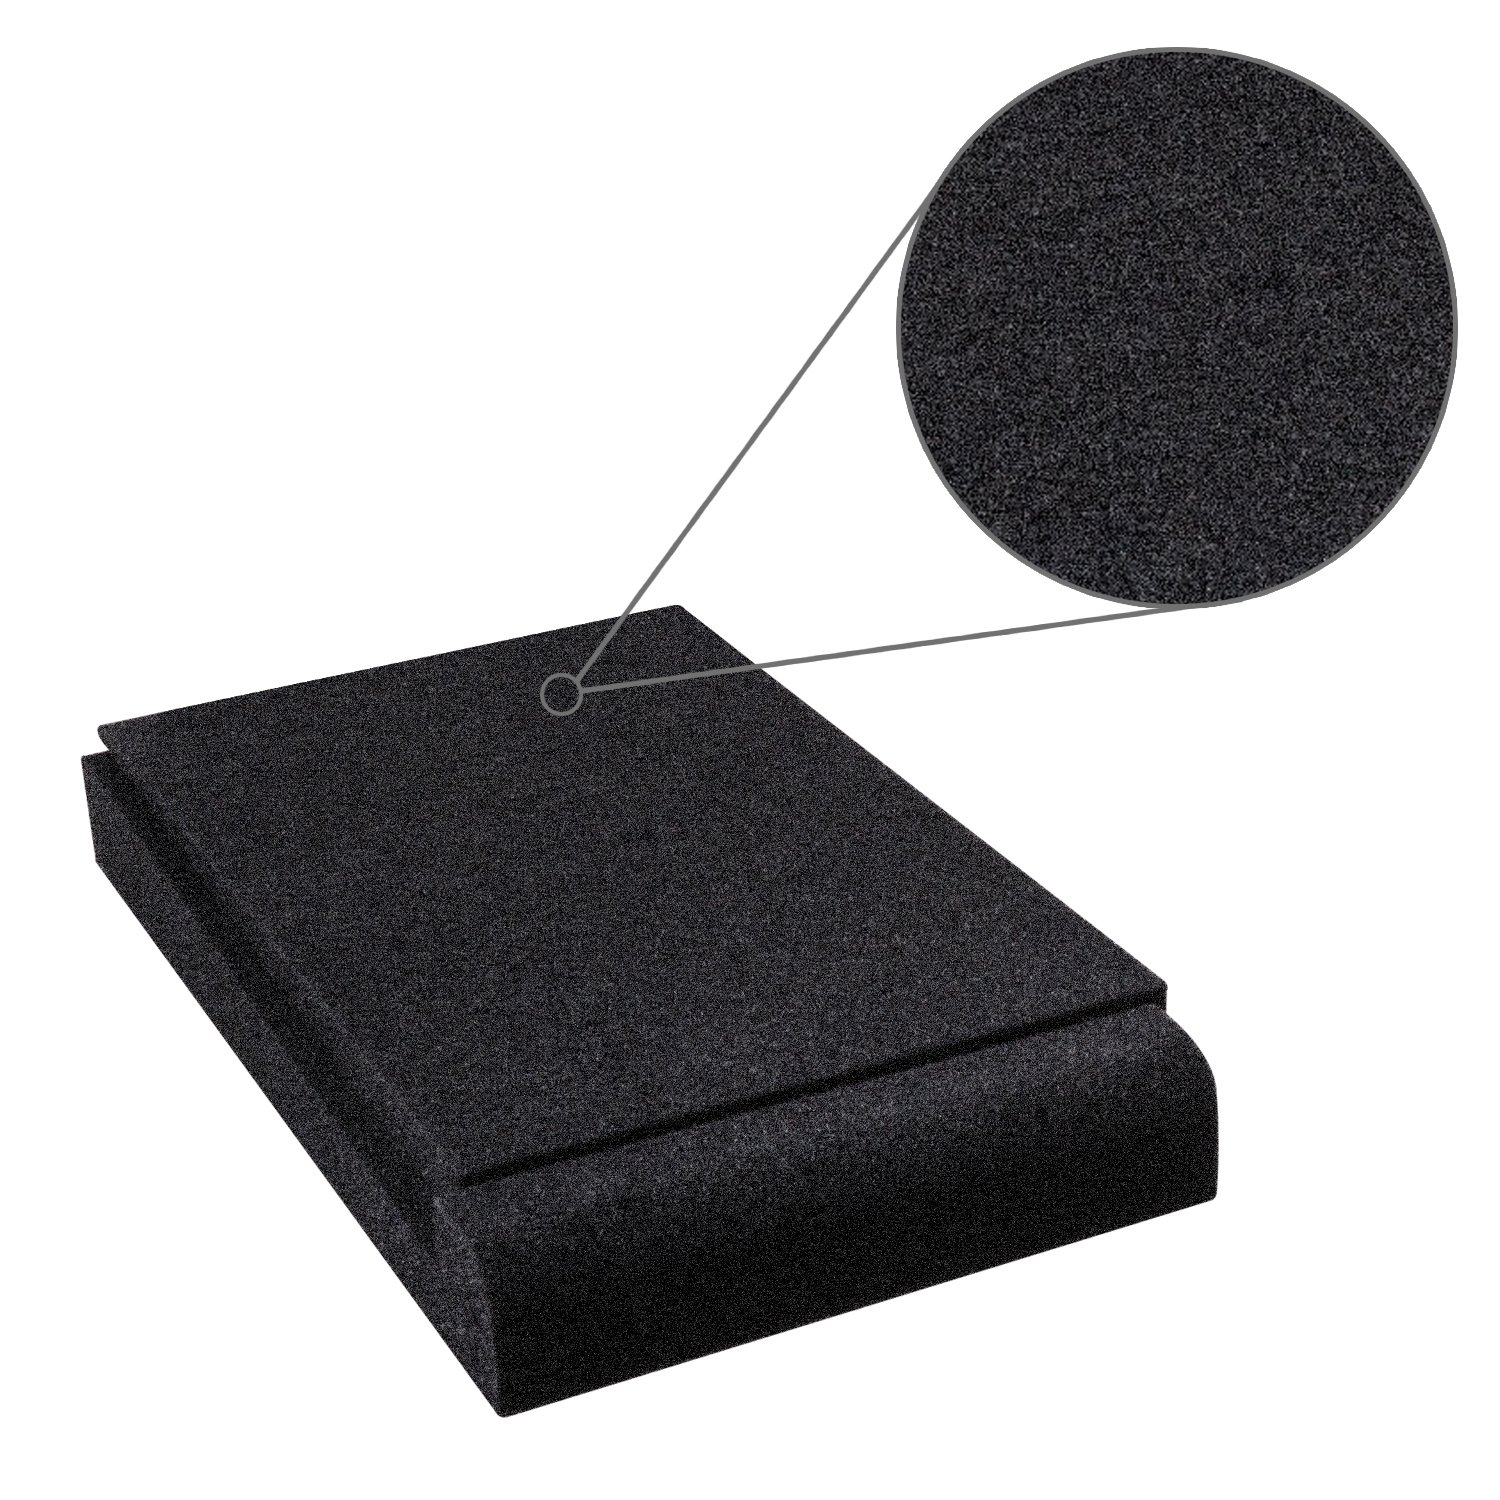 Studio Monitor Isolation Pads, Suitable for 5'' - 8'' inch for Speakers, High-Density Acoustic Foam for Significant Sound Improvement, Prevent Vibrations and Fits most Stands - 2 Pads by Shayson (Image #3)